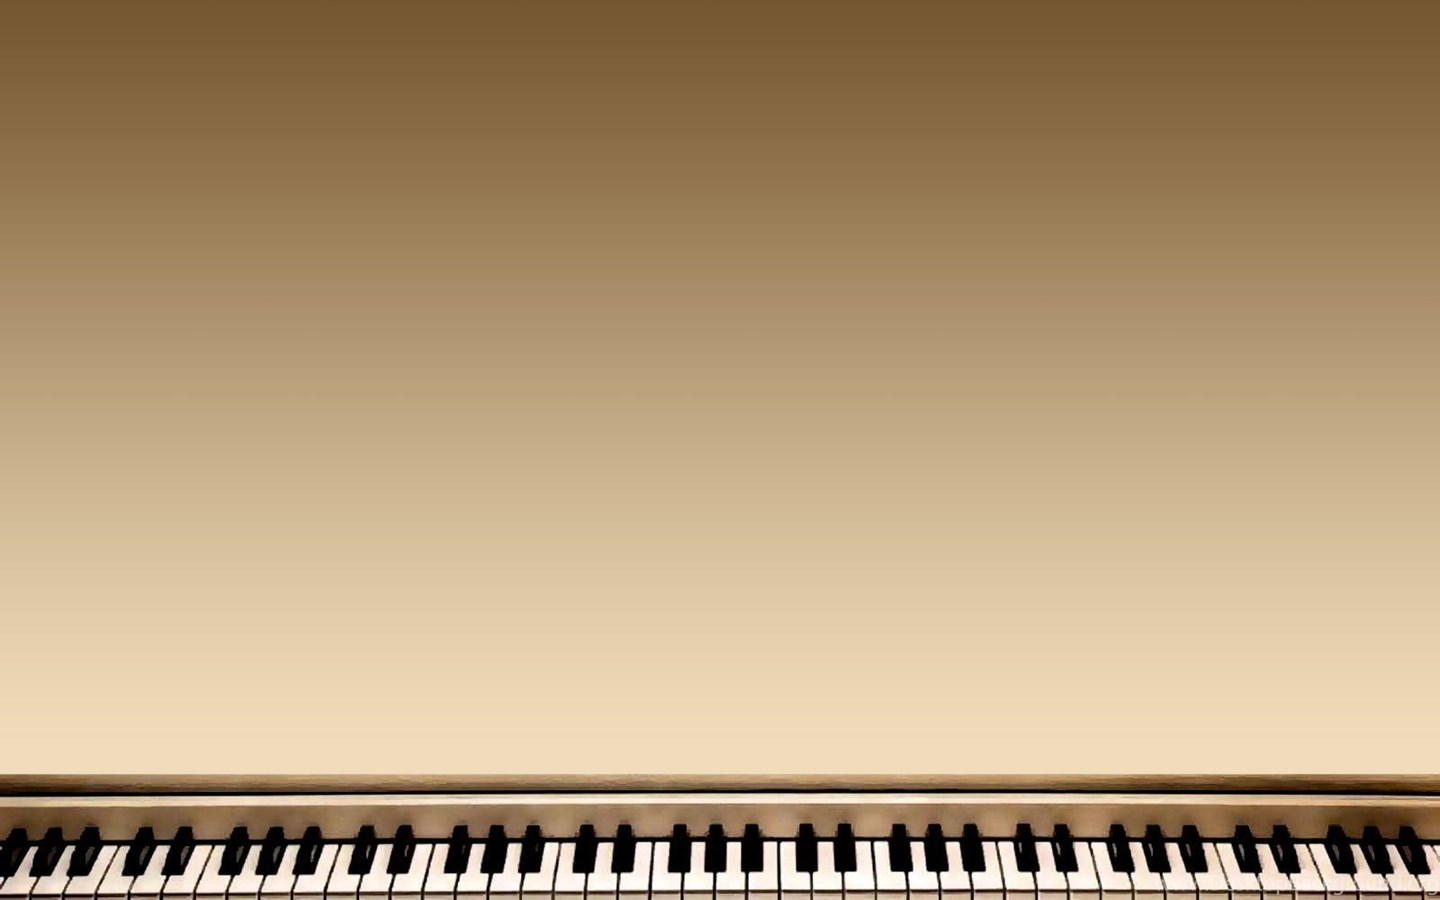 free the piano backgrounds for powerpoint music ppt templates